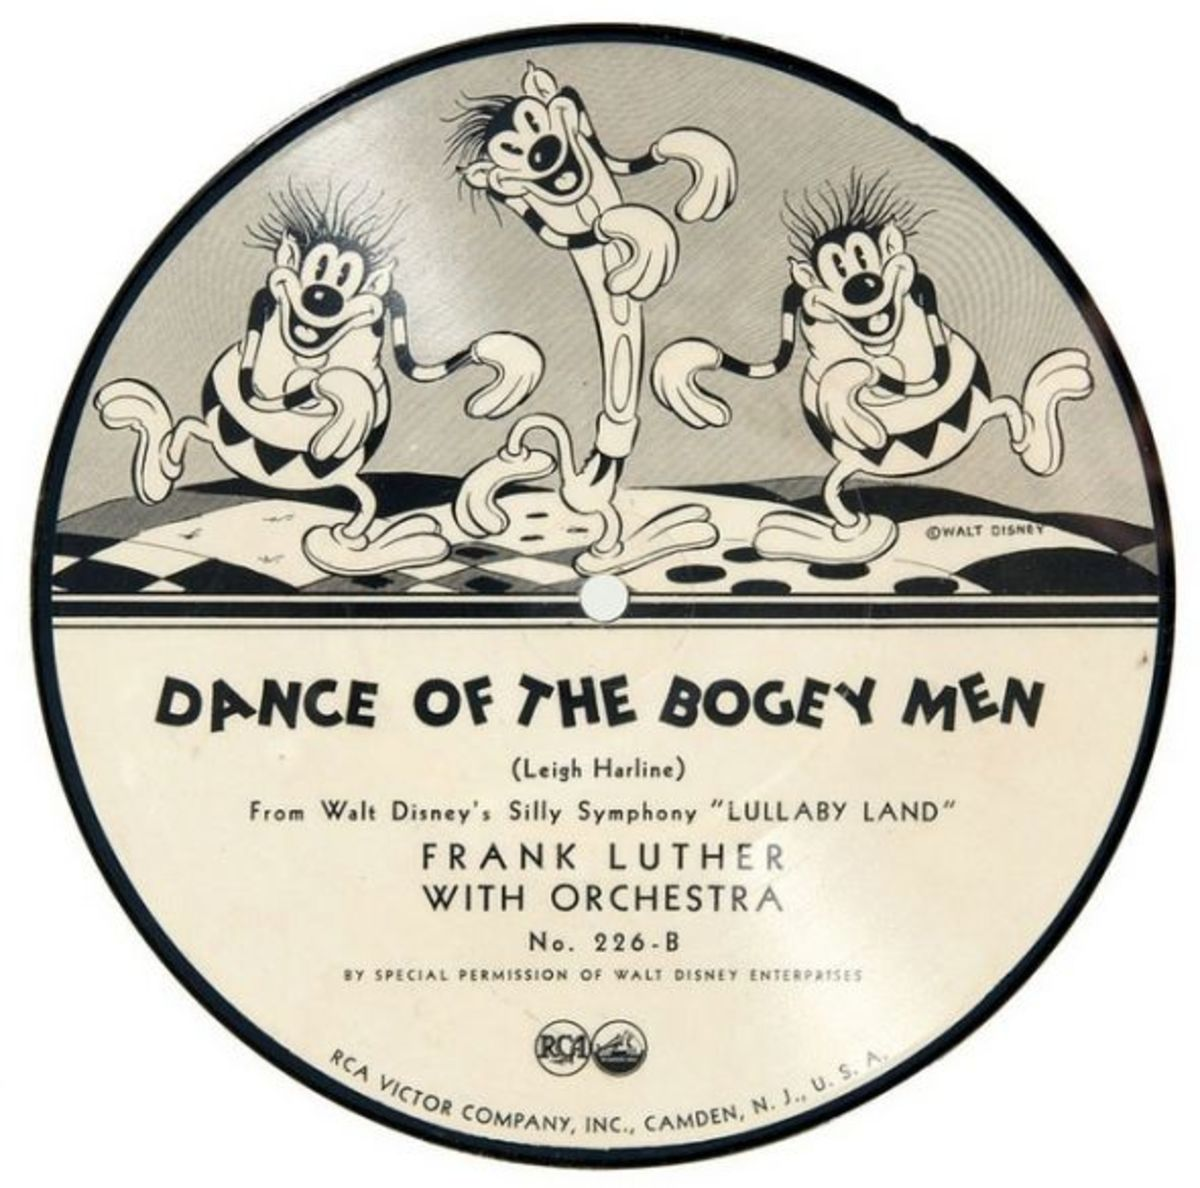 "Frank Luther and His Orchestra Silly Symphony Lullaby Land ""Dance of the Bogey Men"" RCA Victor 226-B  7"" 78 rpm Shellac Record"